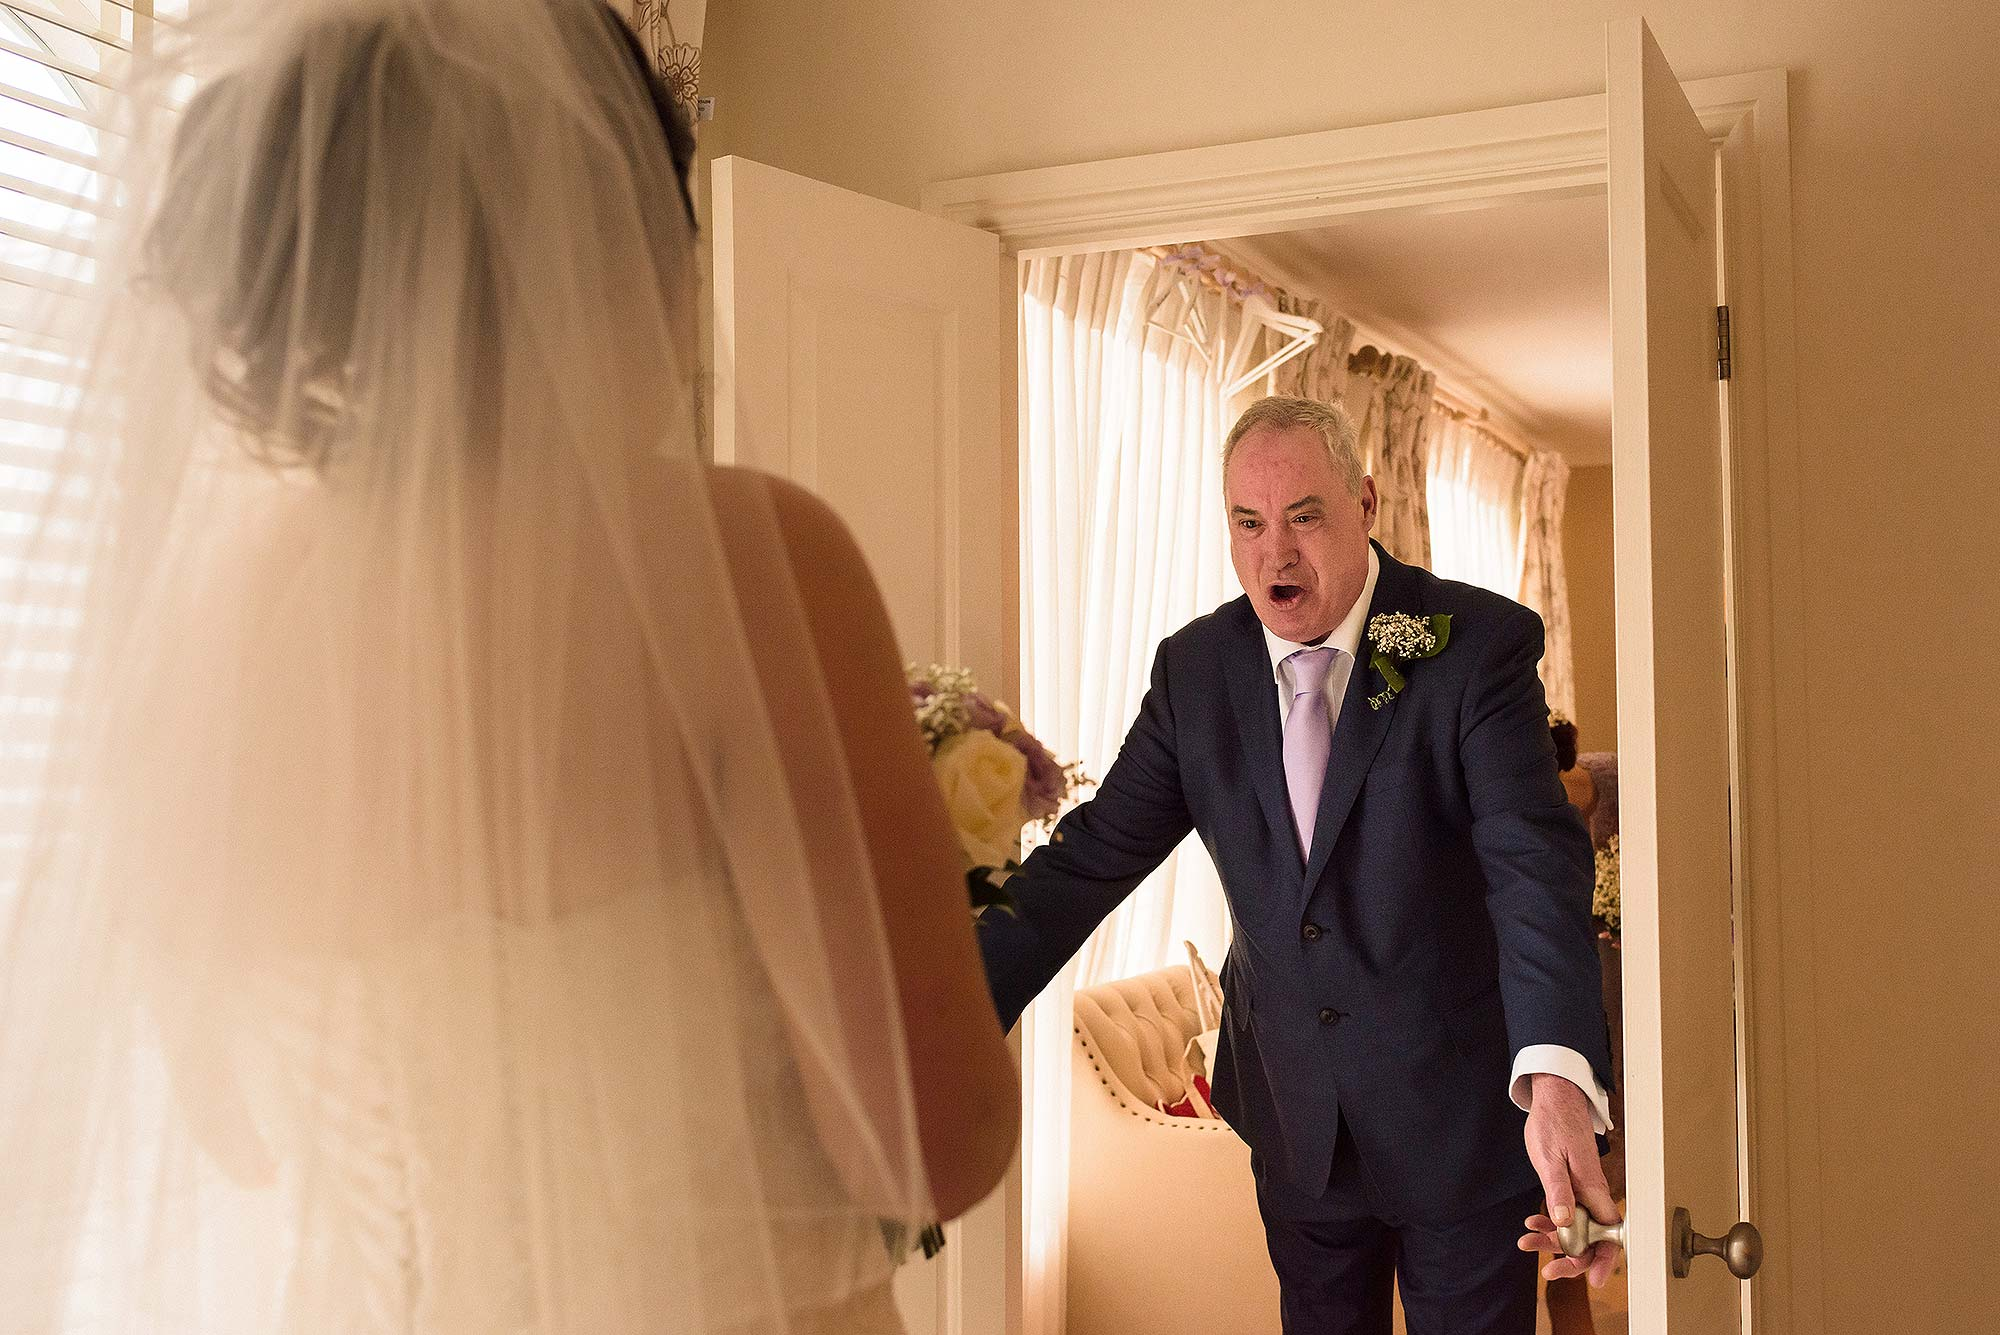 amazing natural moment of father seeing daughter in wedding dress for the first time